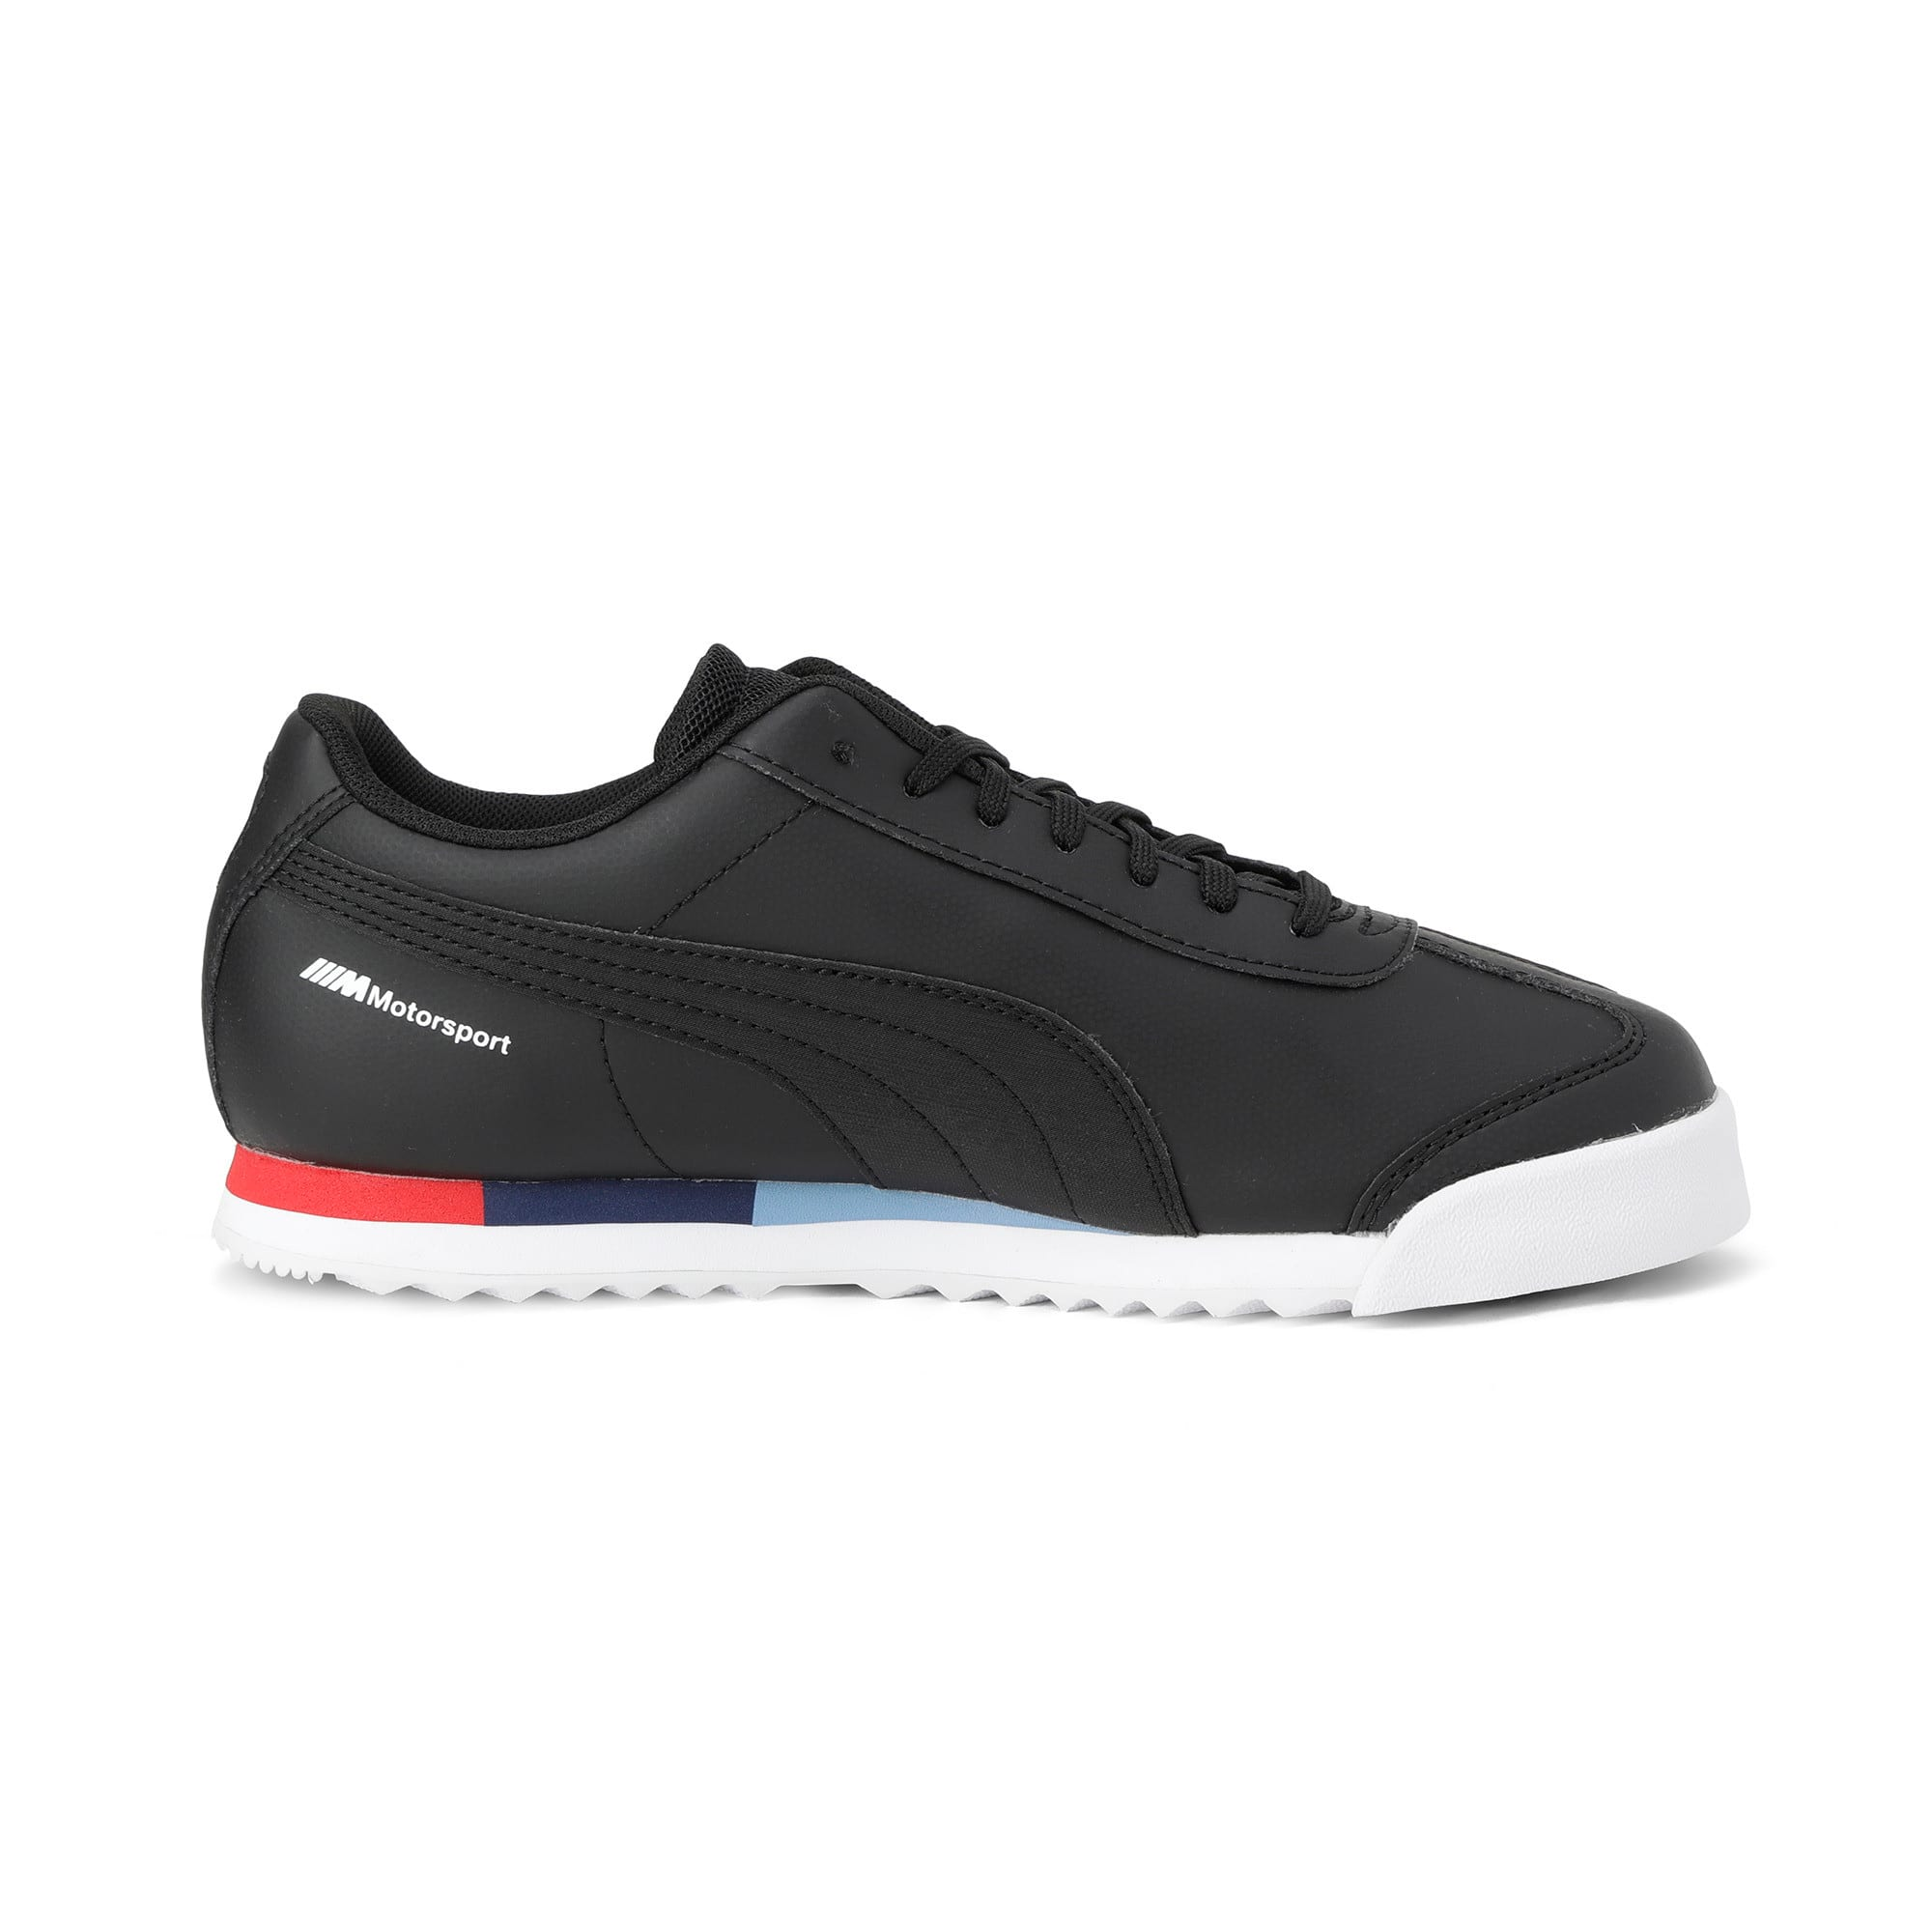 Thumbnail 5 of BMW Motorsport Roma Youth Trainers, Puma Black-Puma Black, medium-IND